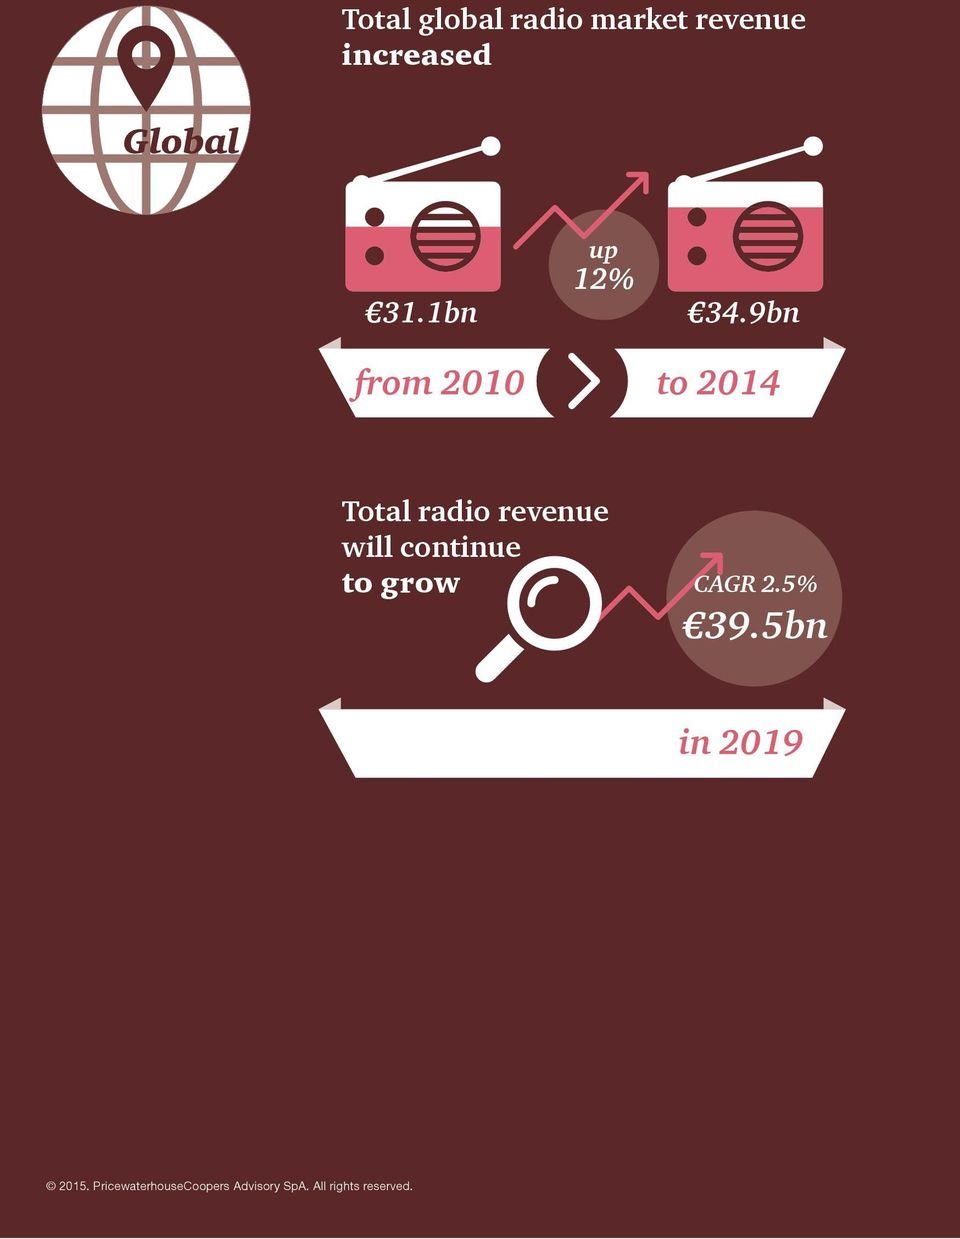 9bn from 2010 to 2014 Total radio